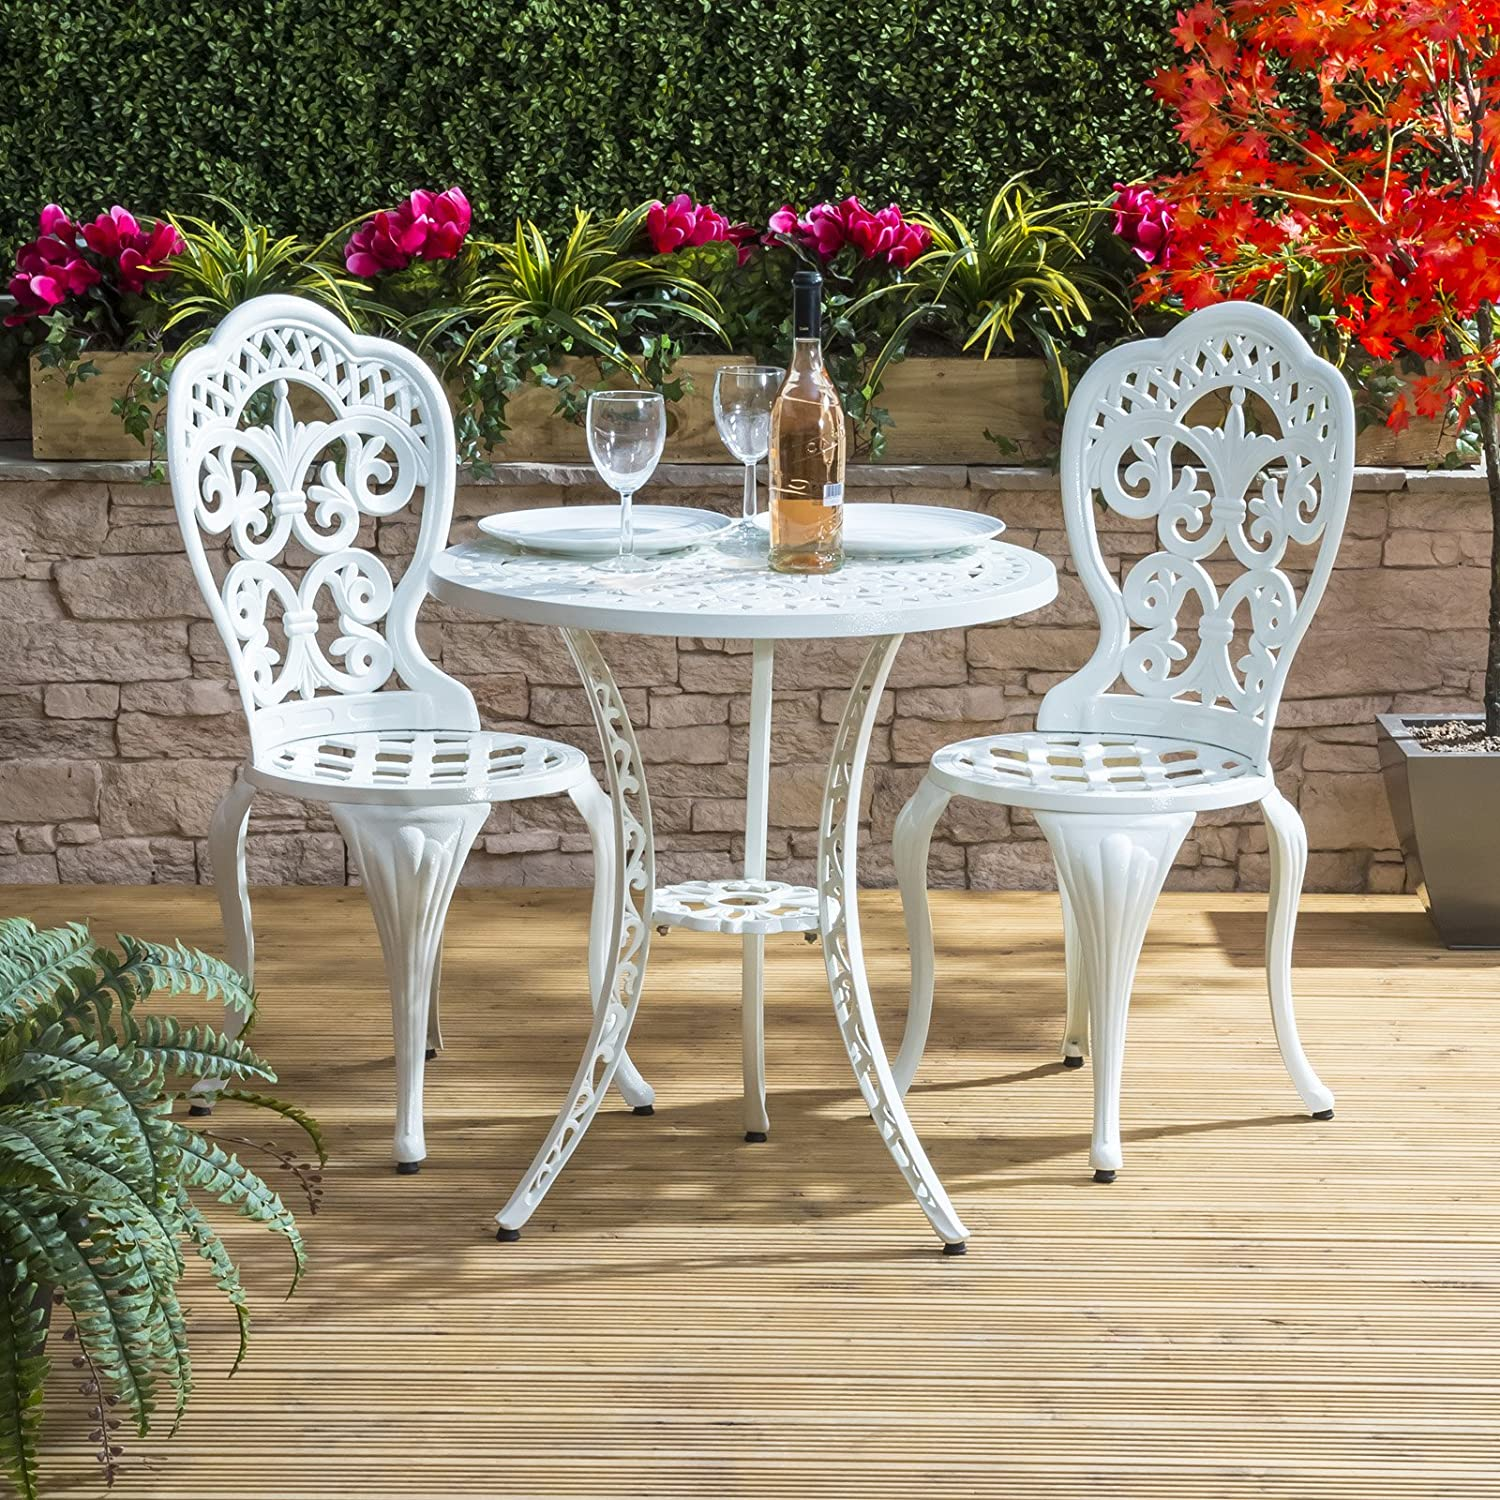 Traditional Cast Aluminium Cafe Bistro Outdoor Garden Furniture